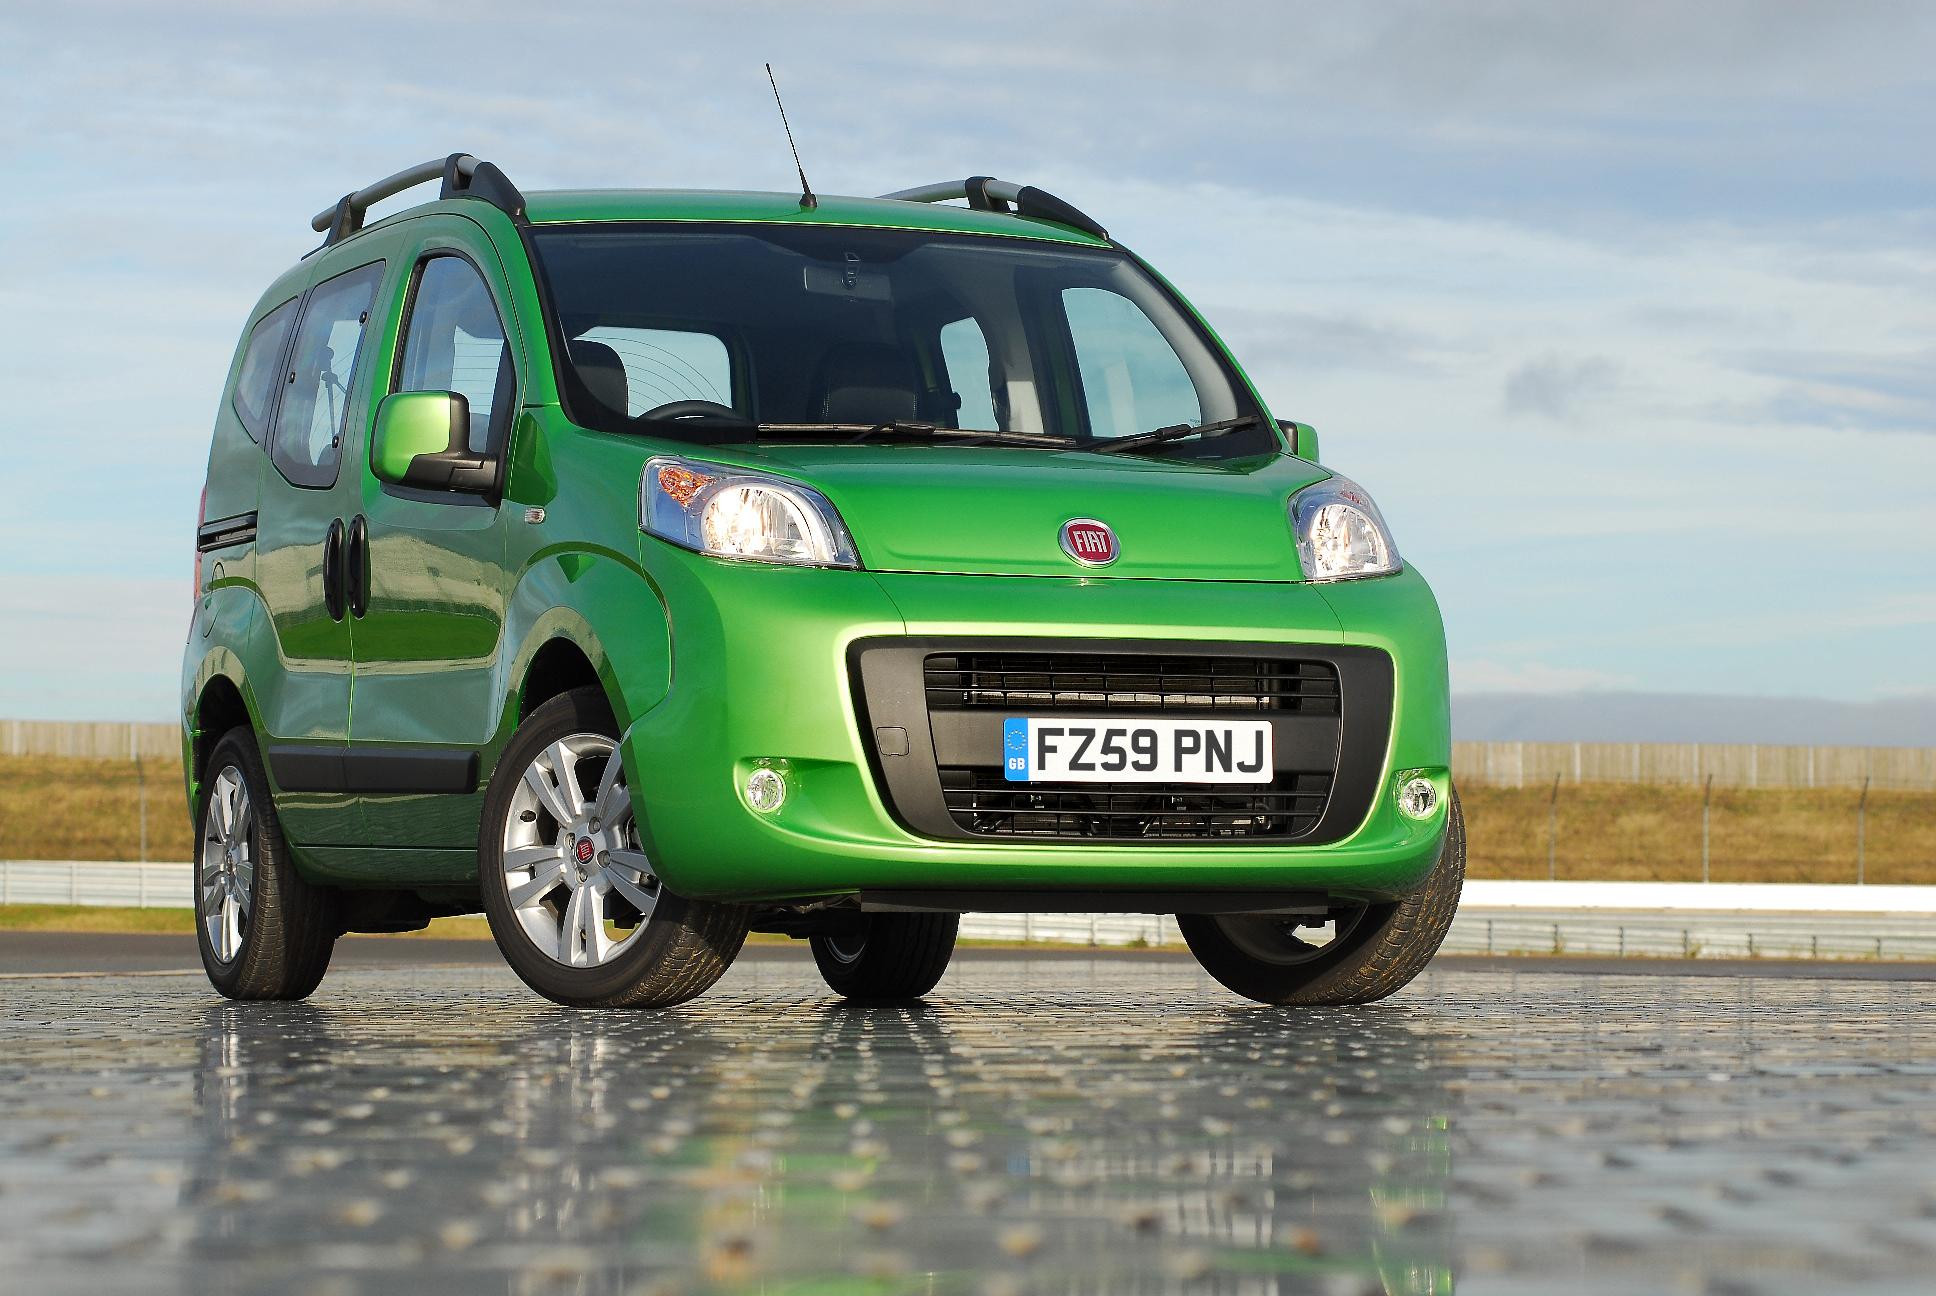 Bright green Fiat Qubo parked by a beach